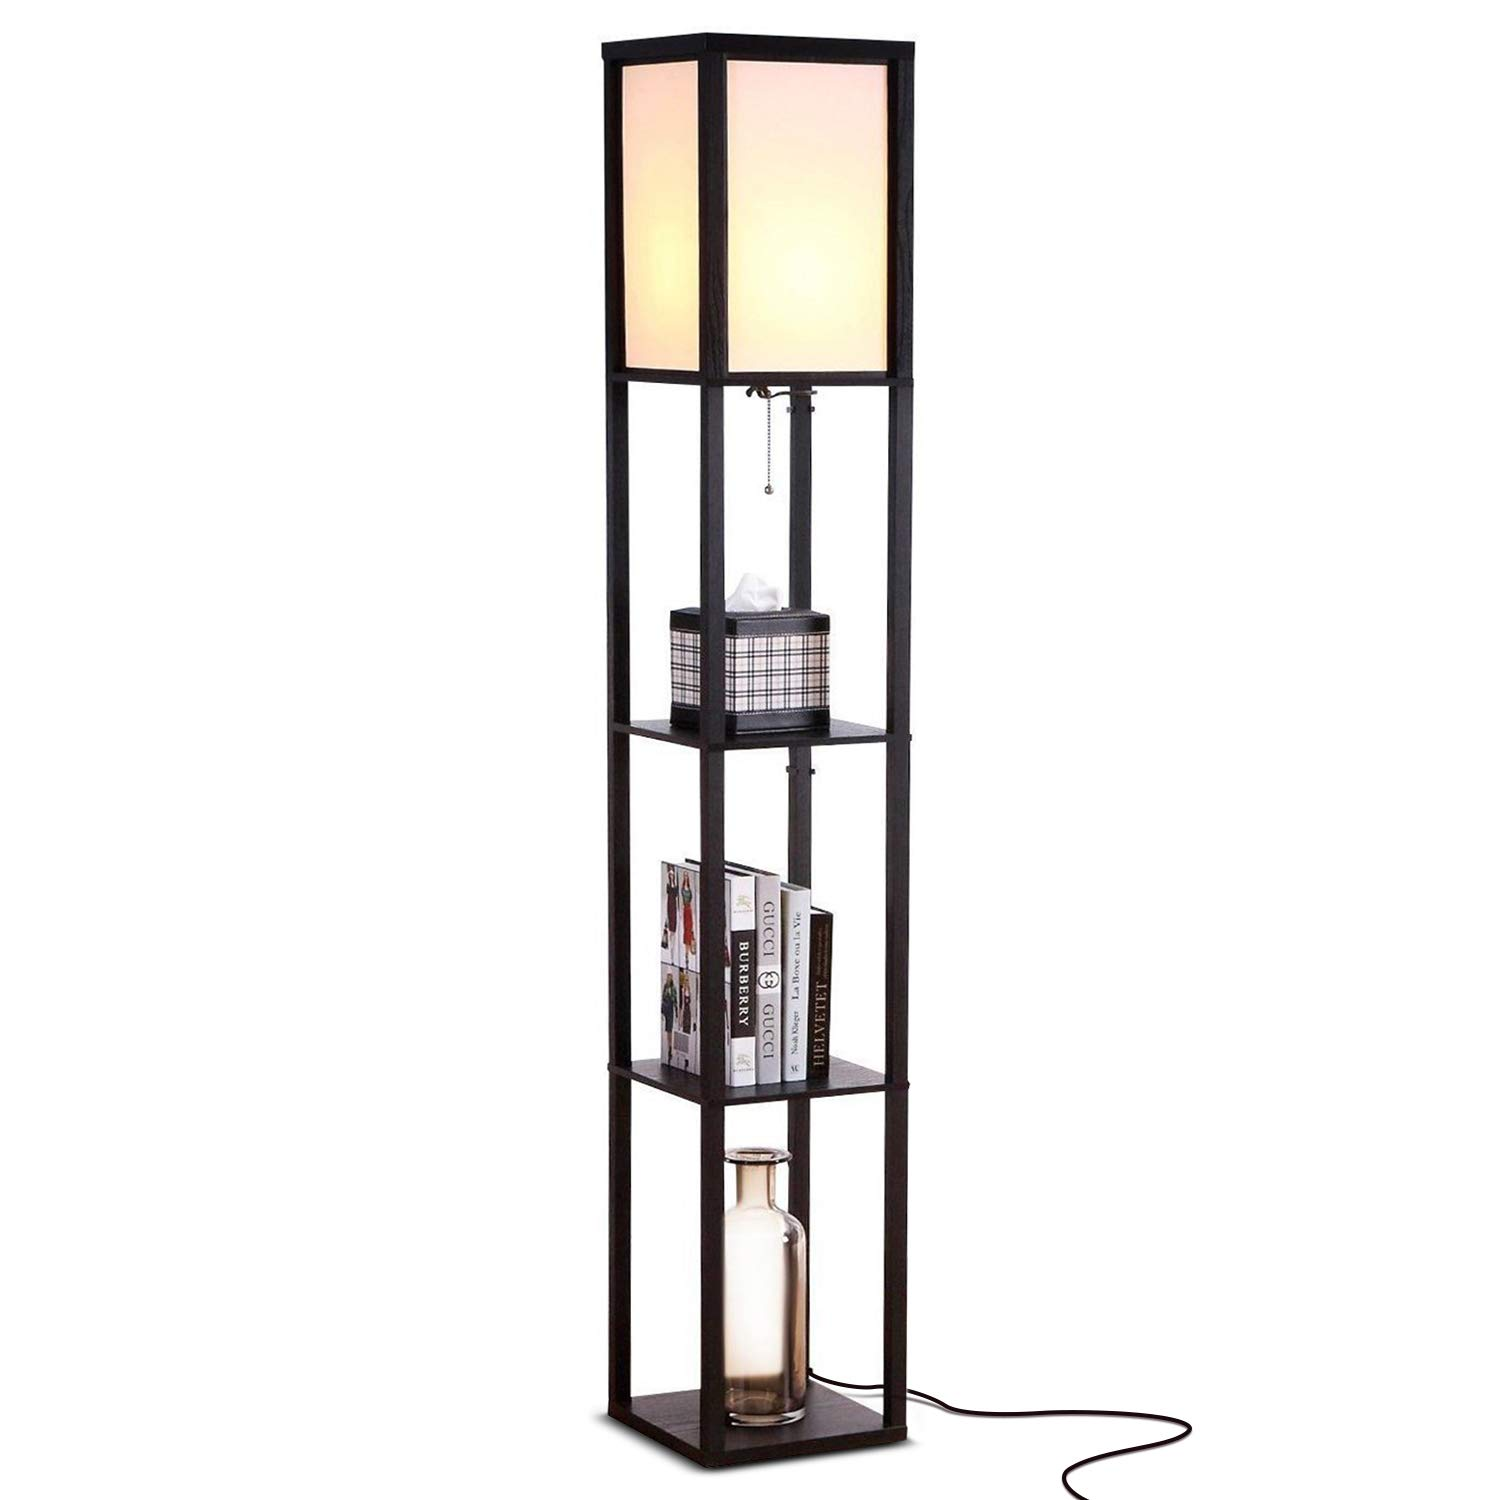 Brightech Maxwell - LED Shelf Floor Lamp - Modern Standing Light for Living Rooms & Bedrooms - Asian Wooden Frame with Open Box Display Shelves - Black by Brightech (Image #1)